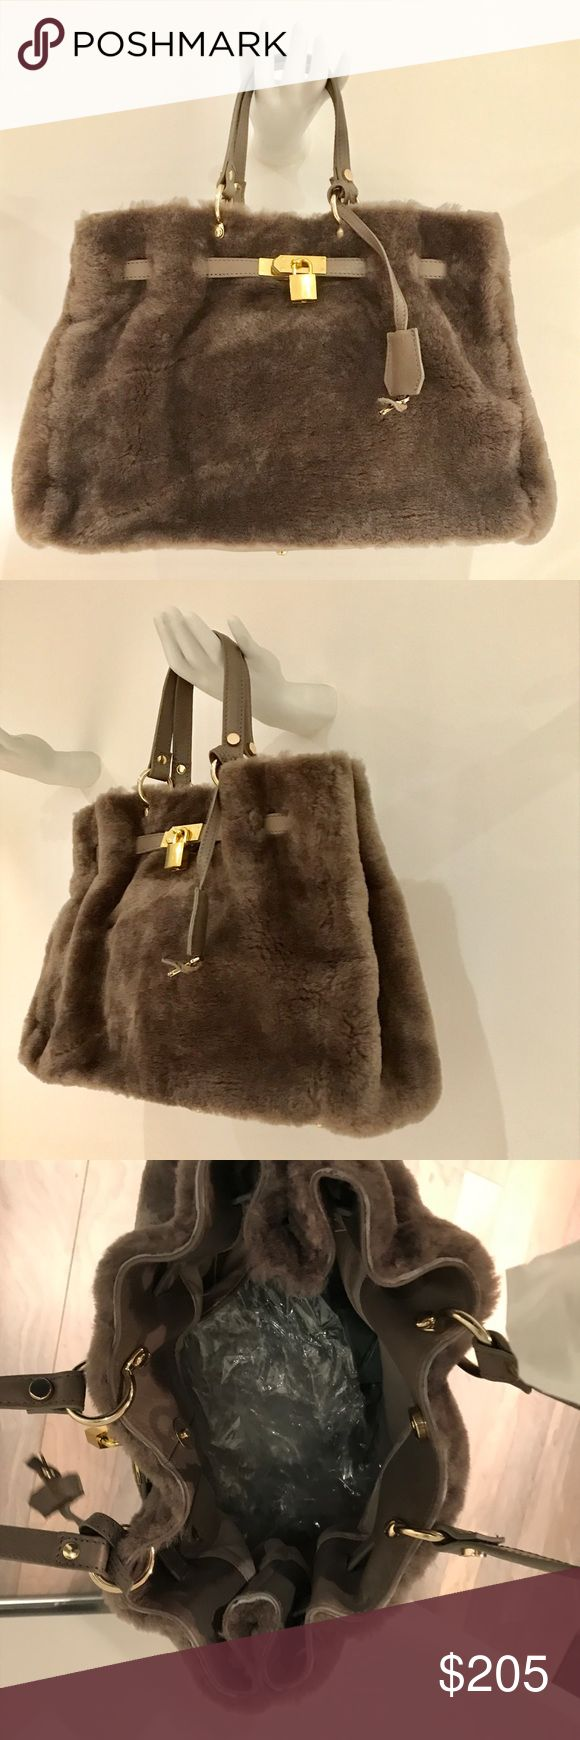 New Charles David Genuine Shearling handheld bag New with Tags!  Beautiful. Hermès like styling. Charles David. 💯 % genuine shearling. Charles David Bags Satchels